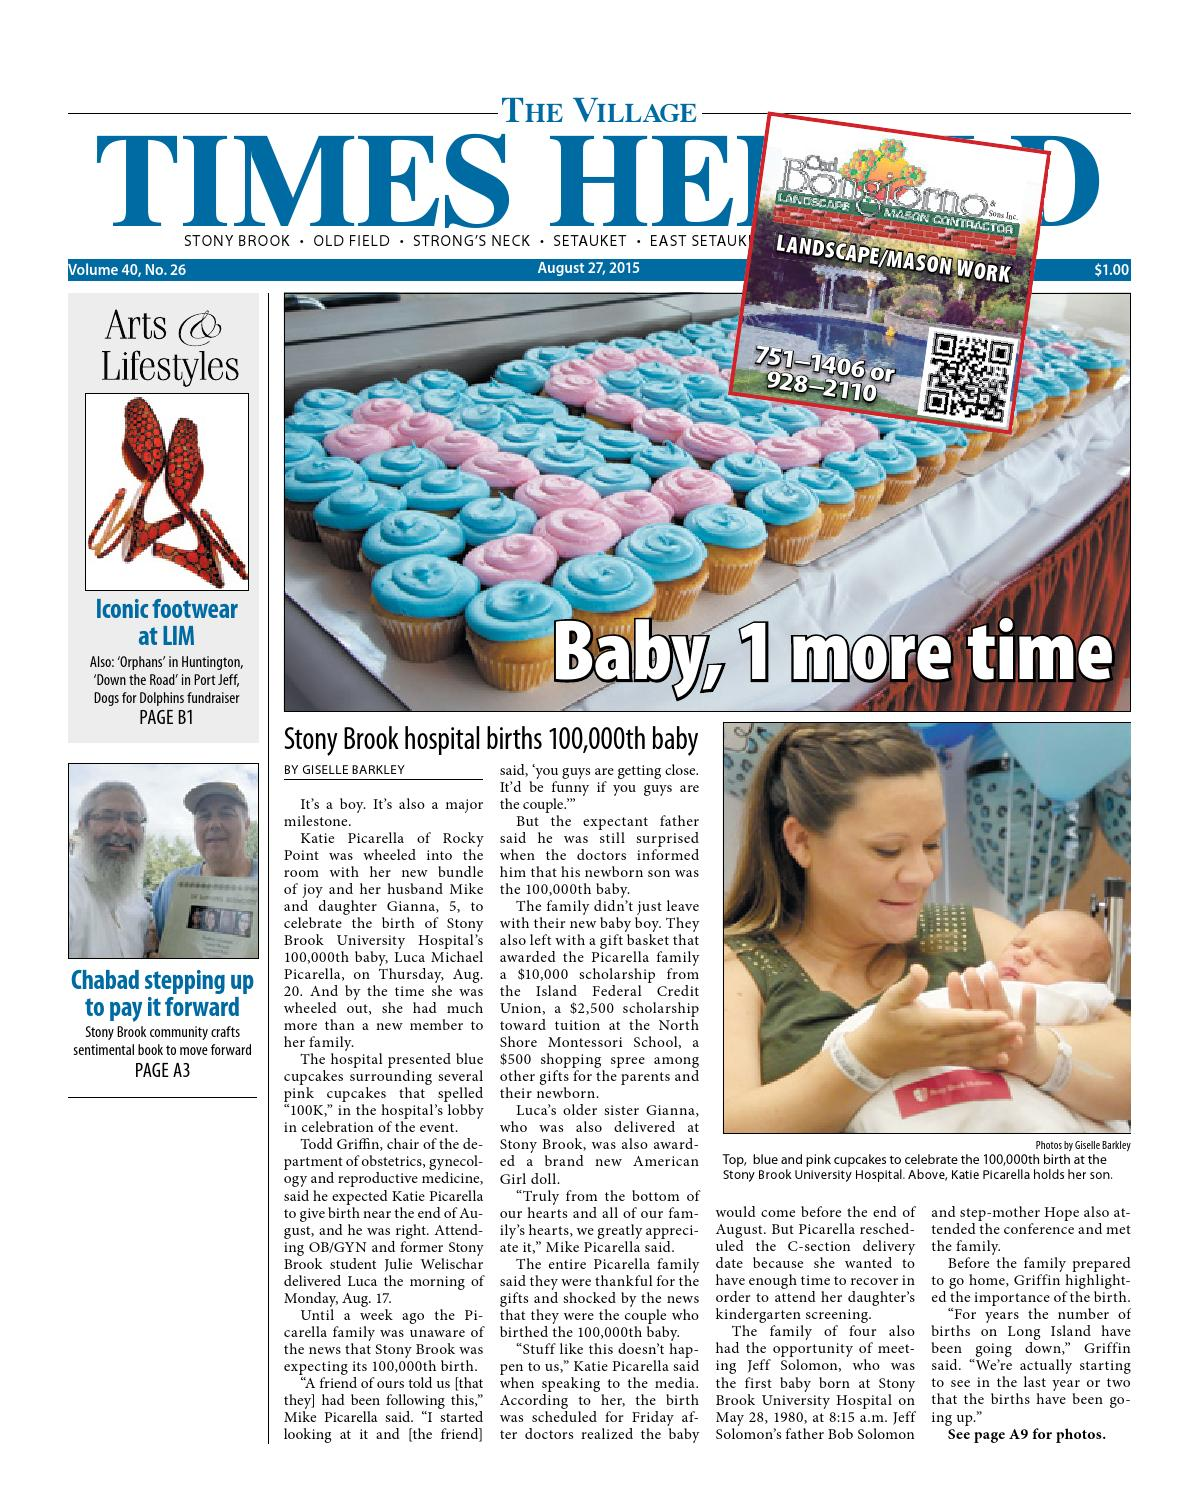 51311c8eb2 The Village Times Herald - August 27, 2015 by TBR News Media - issuu